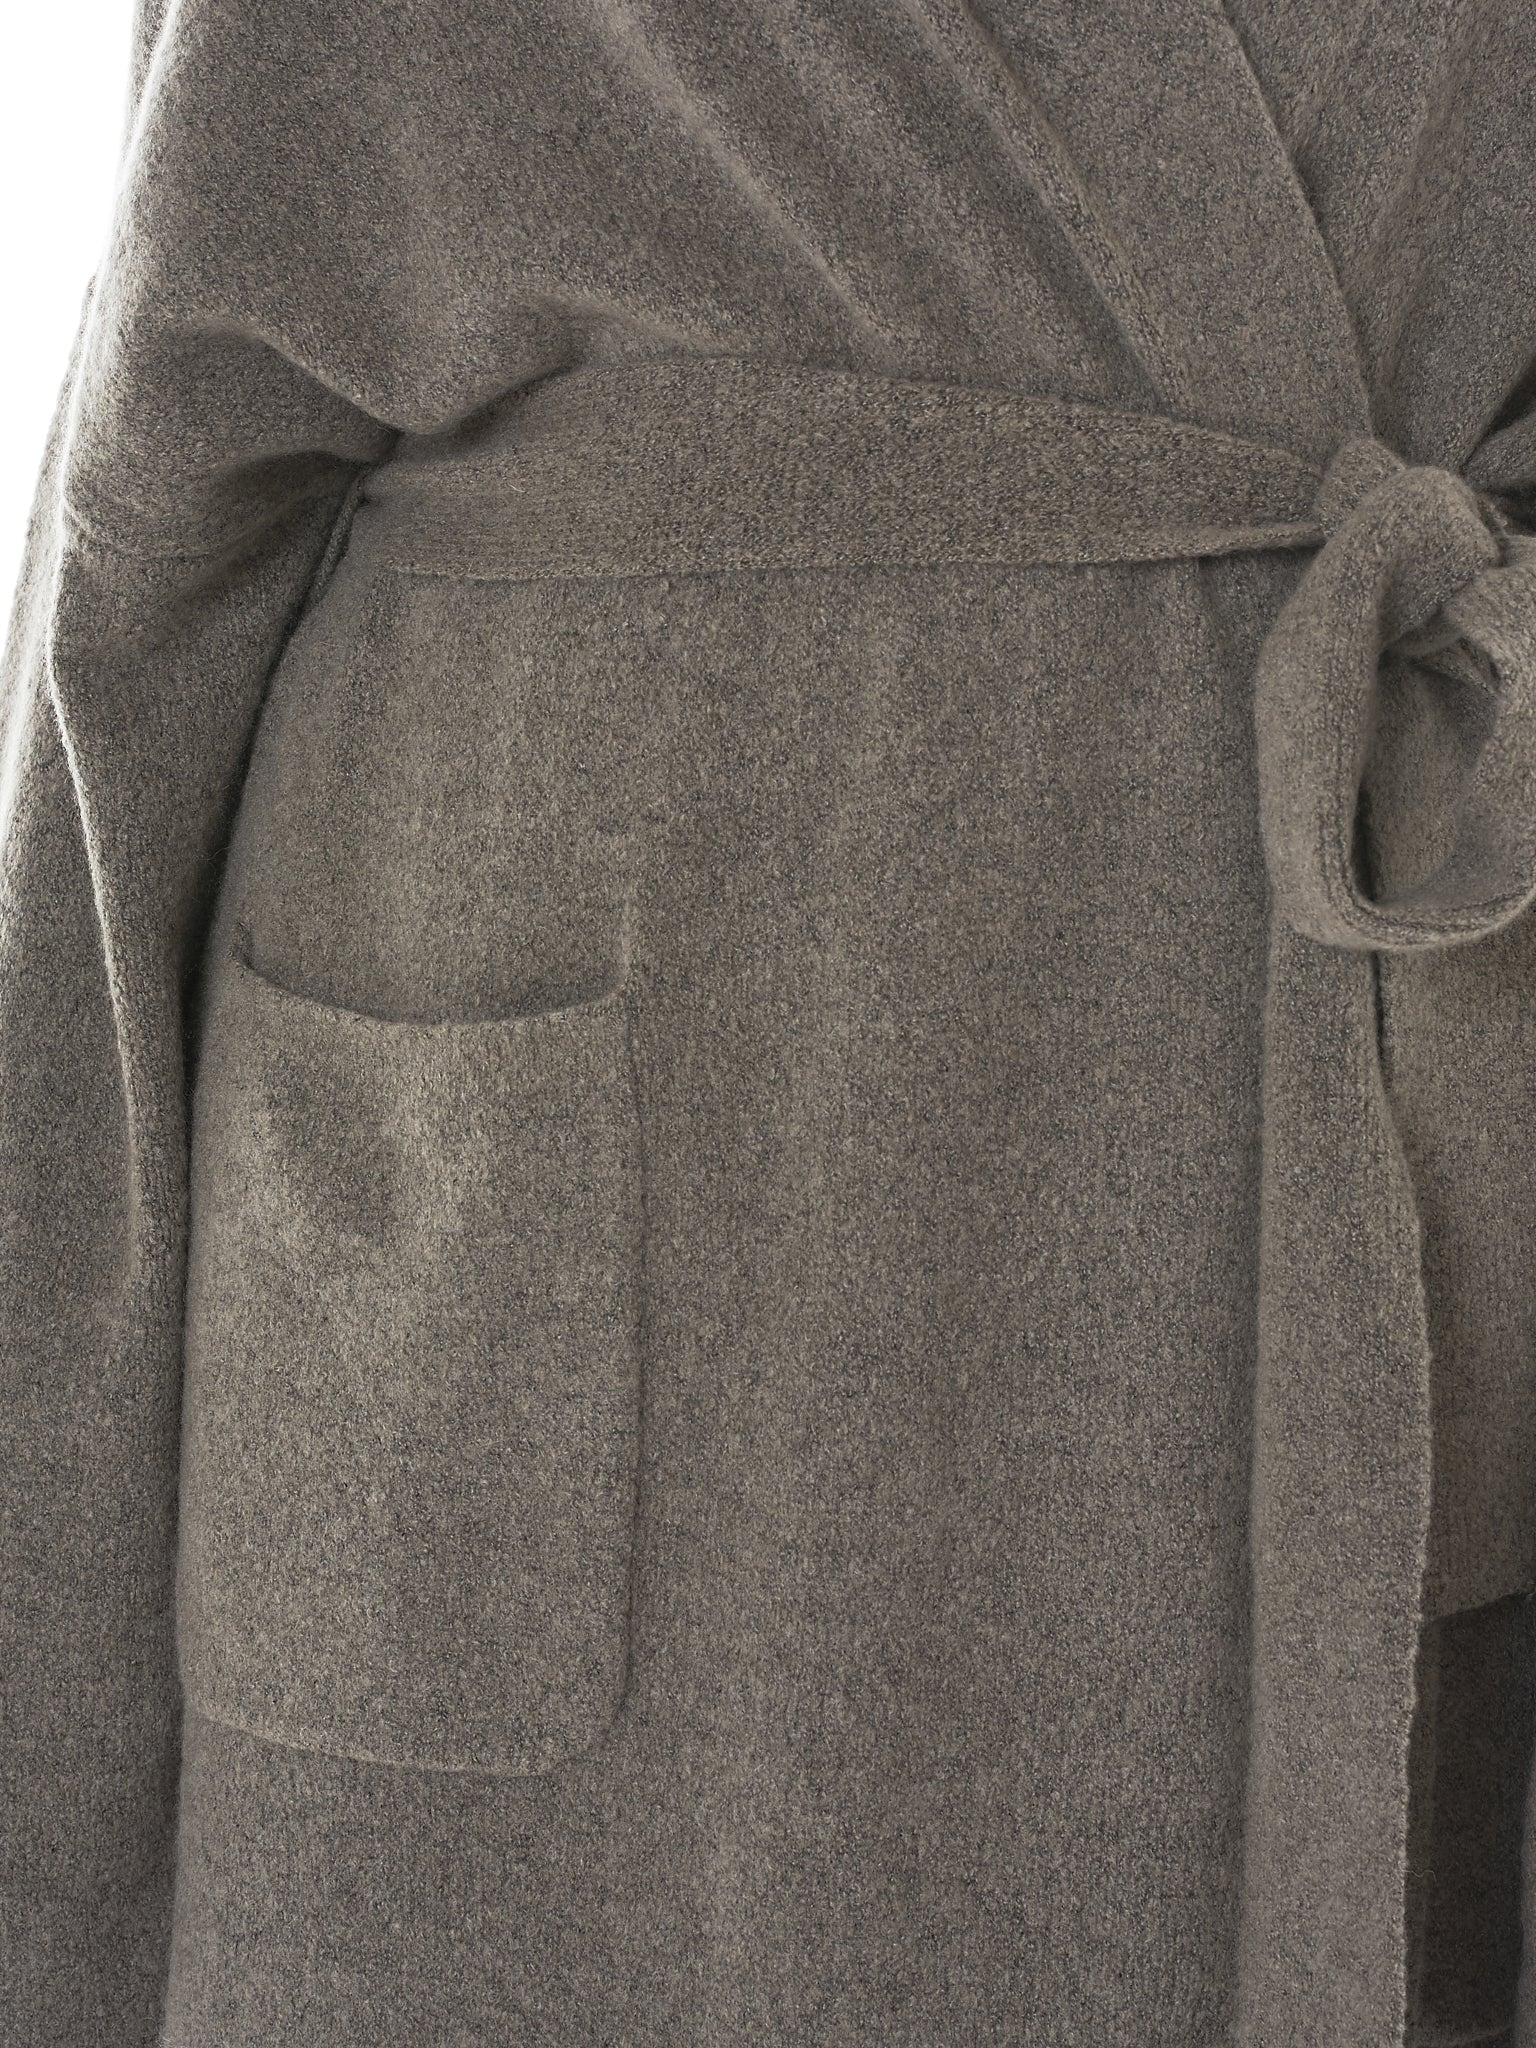 Soyer - Hlorenzo Detail 2